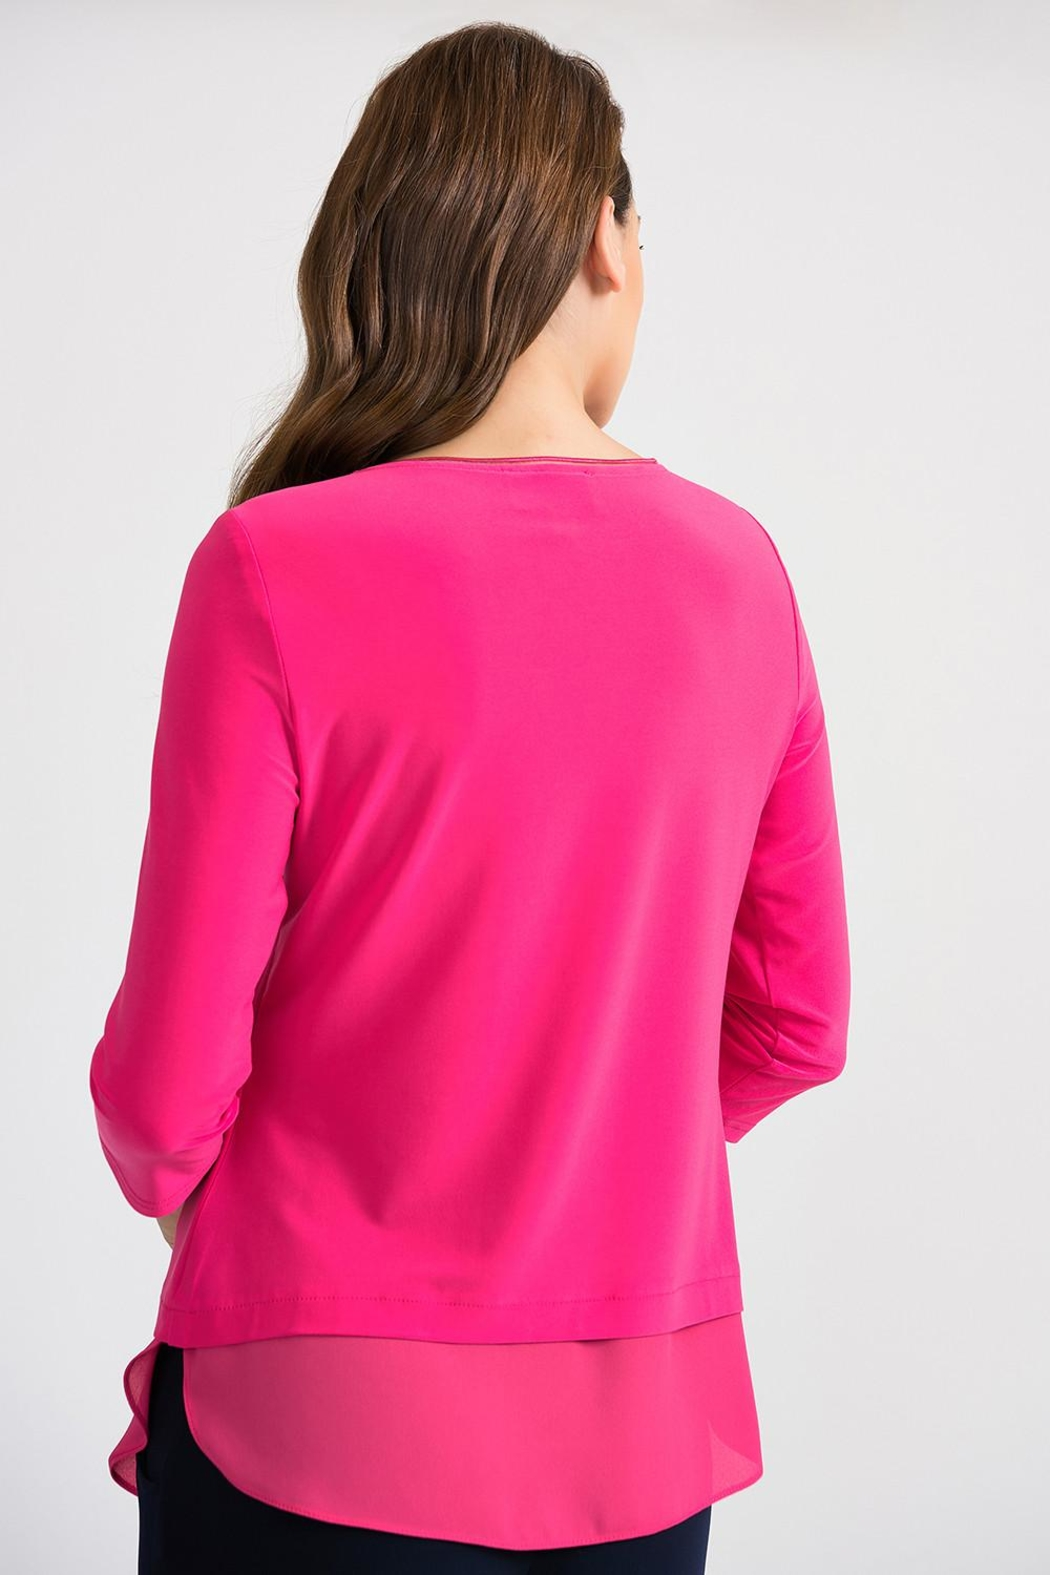 Joseph Ribkoff Hyper Pink Top - Side Cropped Image